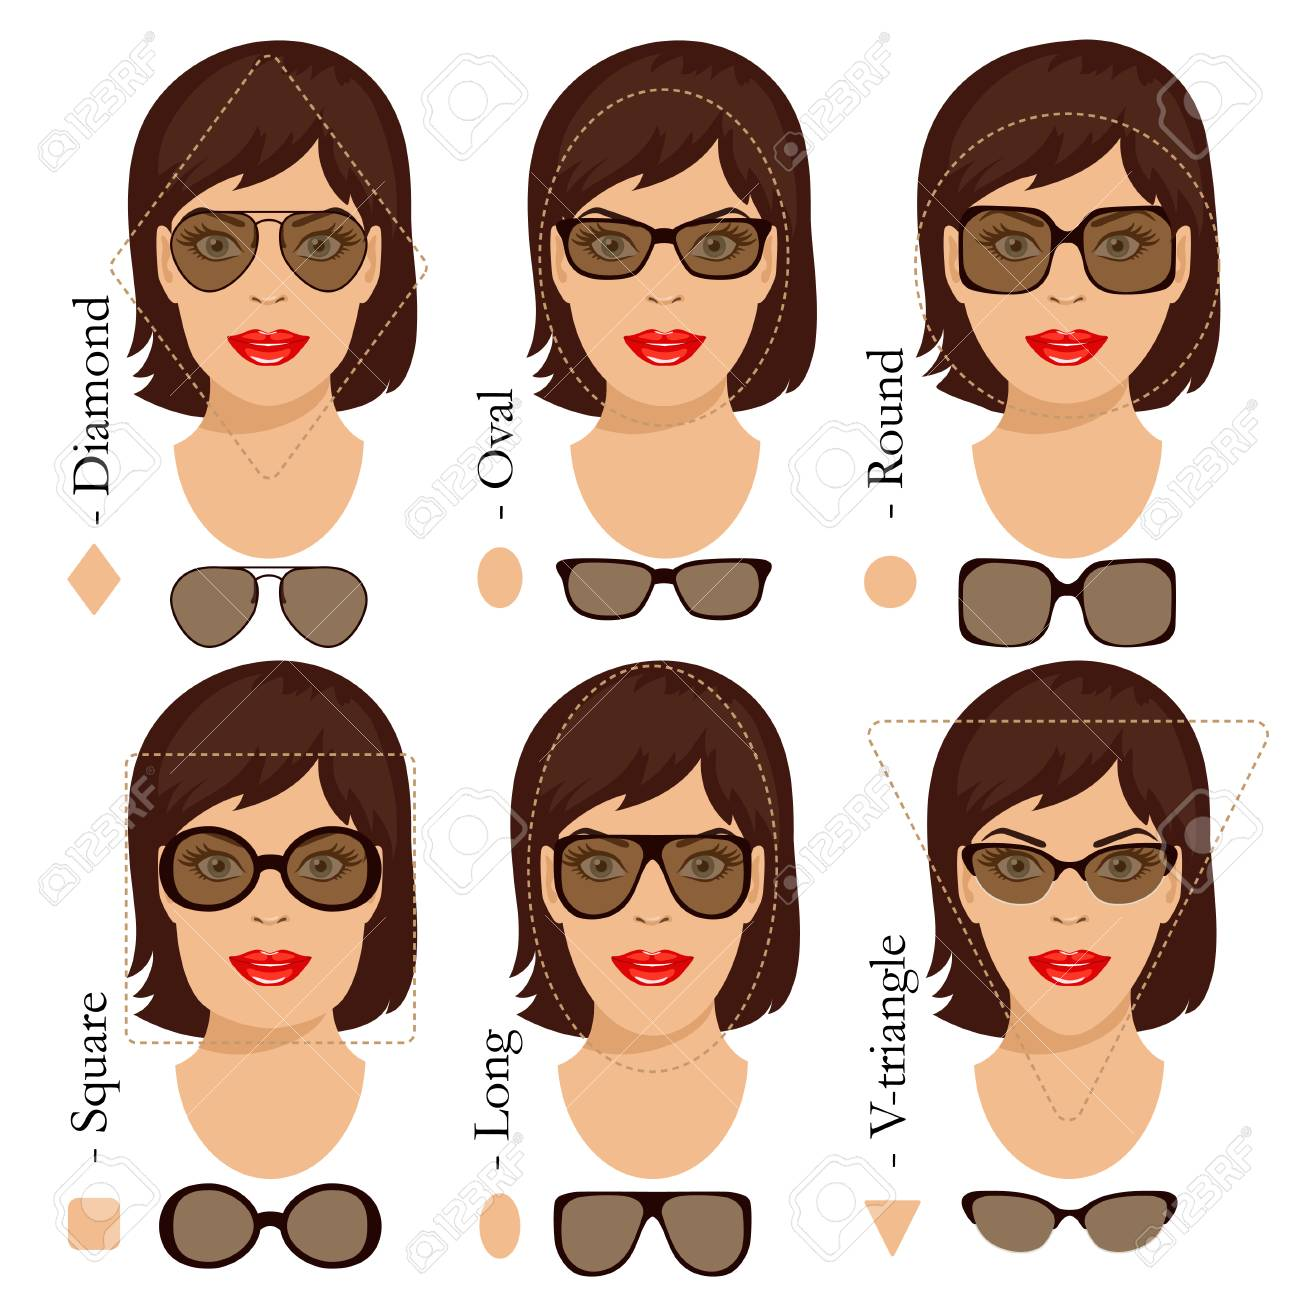 aec67ce2aef Stock vector illustration of sunglasses shapes for different womens face  types - square